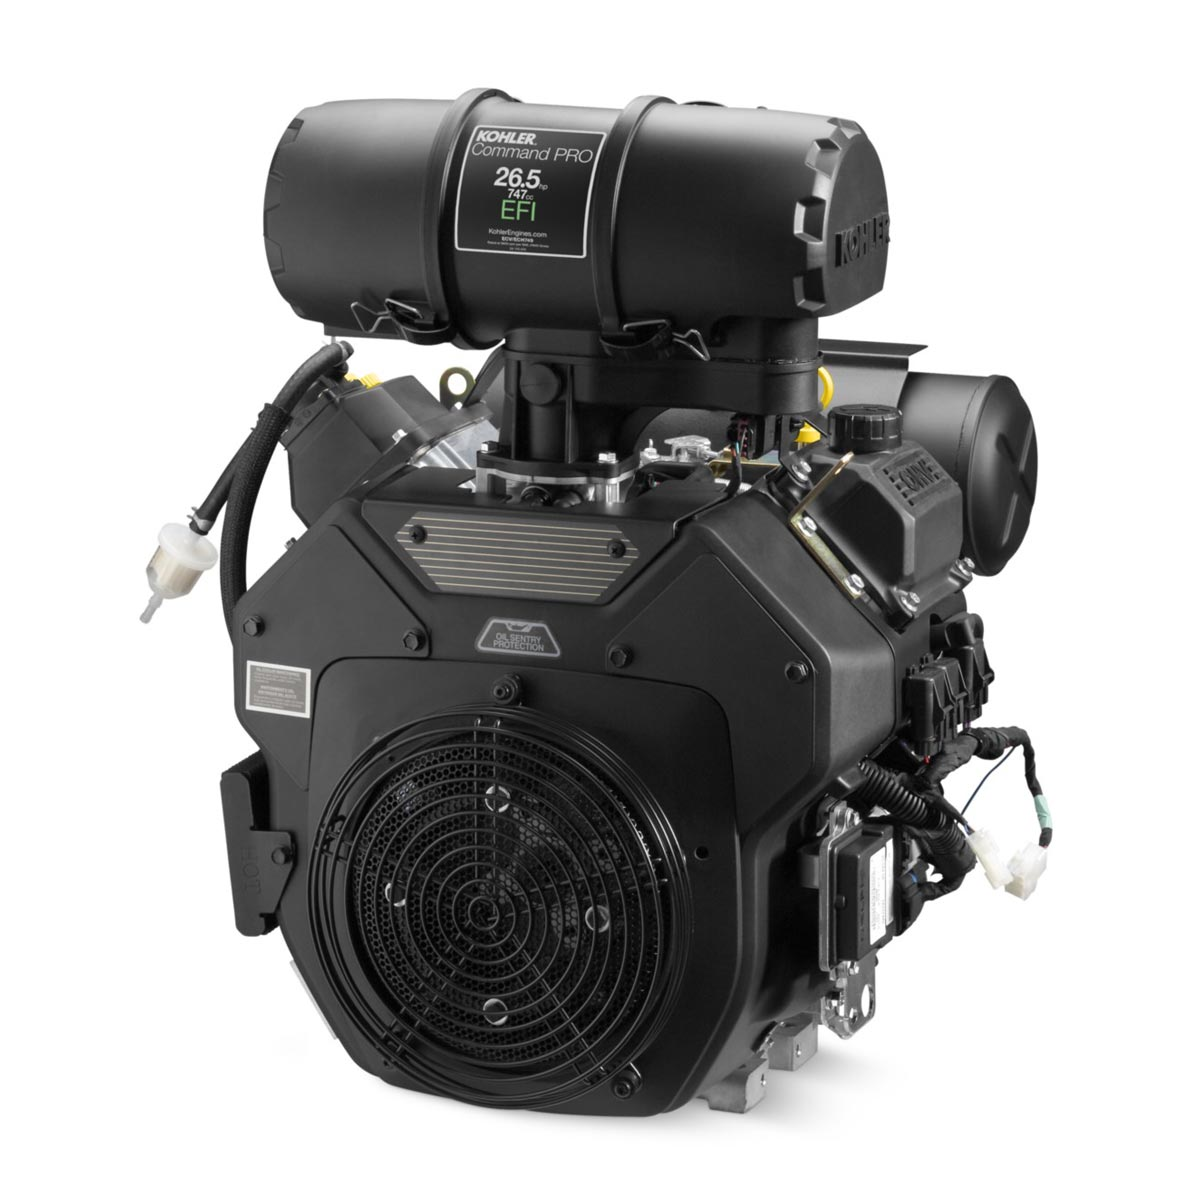 Kohler PA-ECH749-3001  26.5 Hp Engine HDAC Heavy Duty Air Cleaner Fuel Injected EFI PA-ECH749-3061